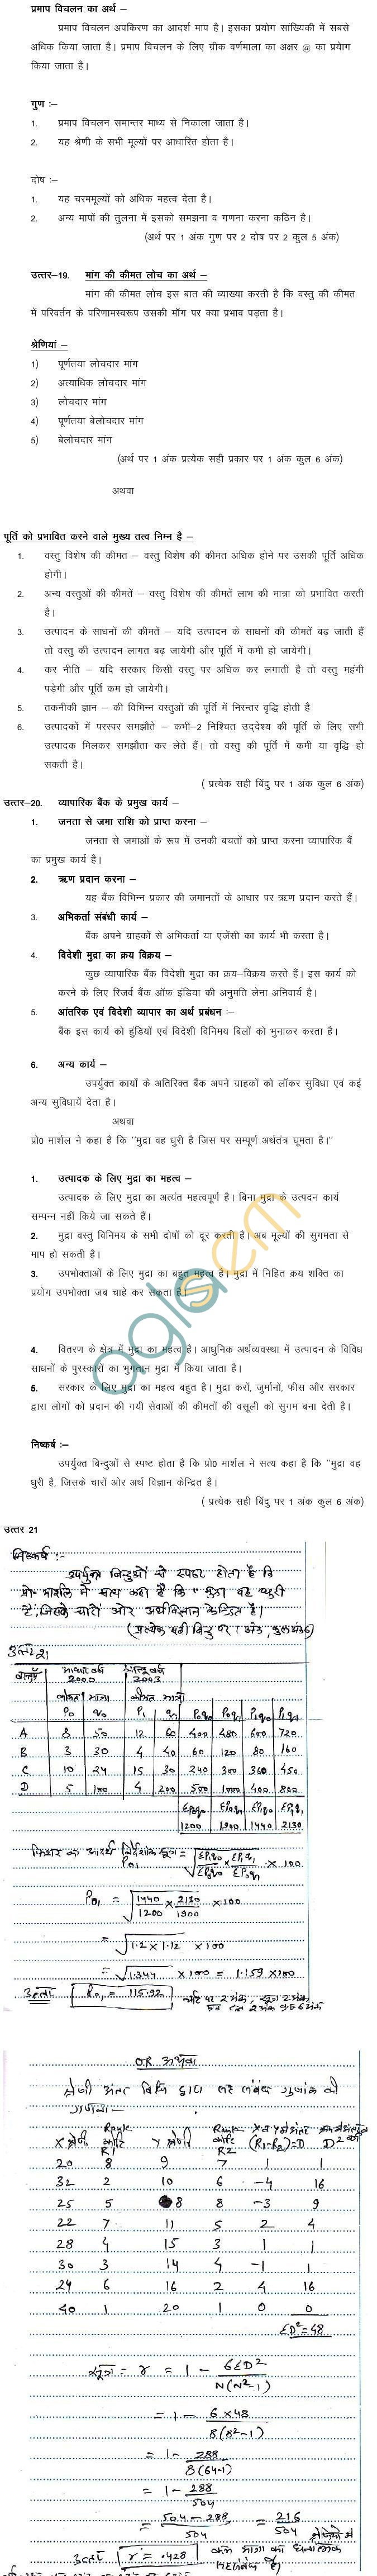 MP Board Class XII Economics Model Questions & Answers - Set 1